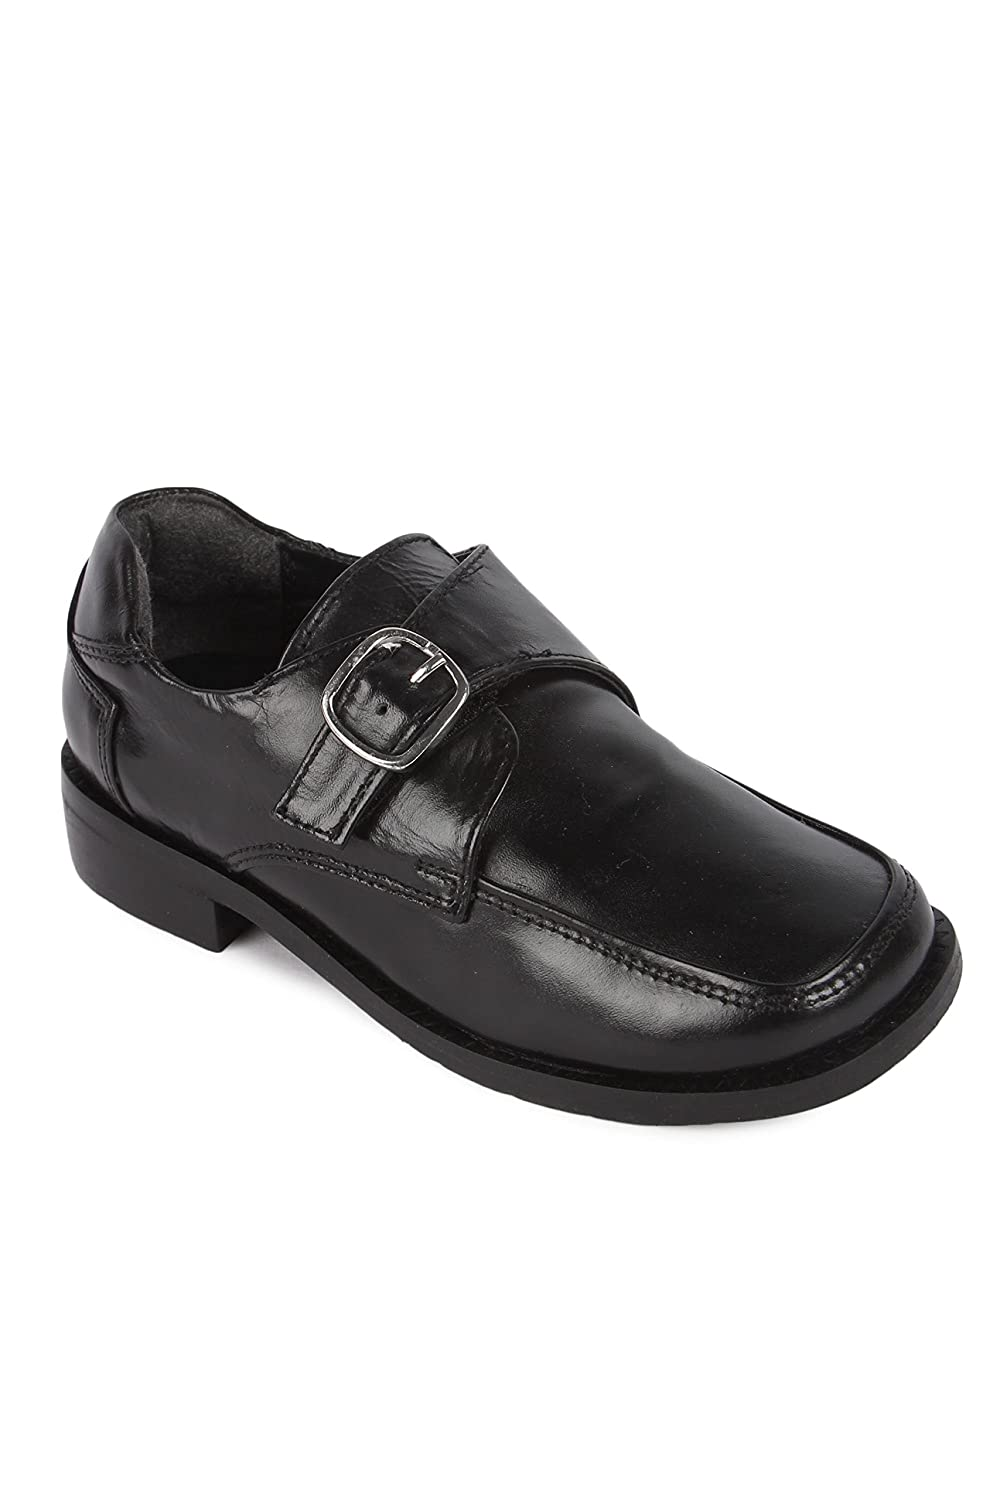 69b44ad95 Rubber sole. SIZE NOTE  ORDER ONE SIZE LARGER THEN REGULAR FOR PROPER  FITTING Made up of HAND-FINISHED LEATHER provides long lasting durability